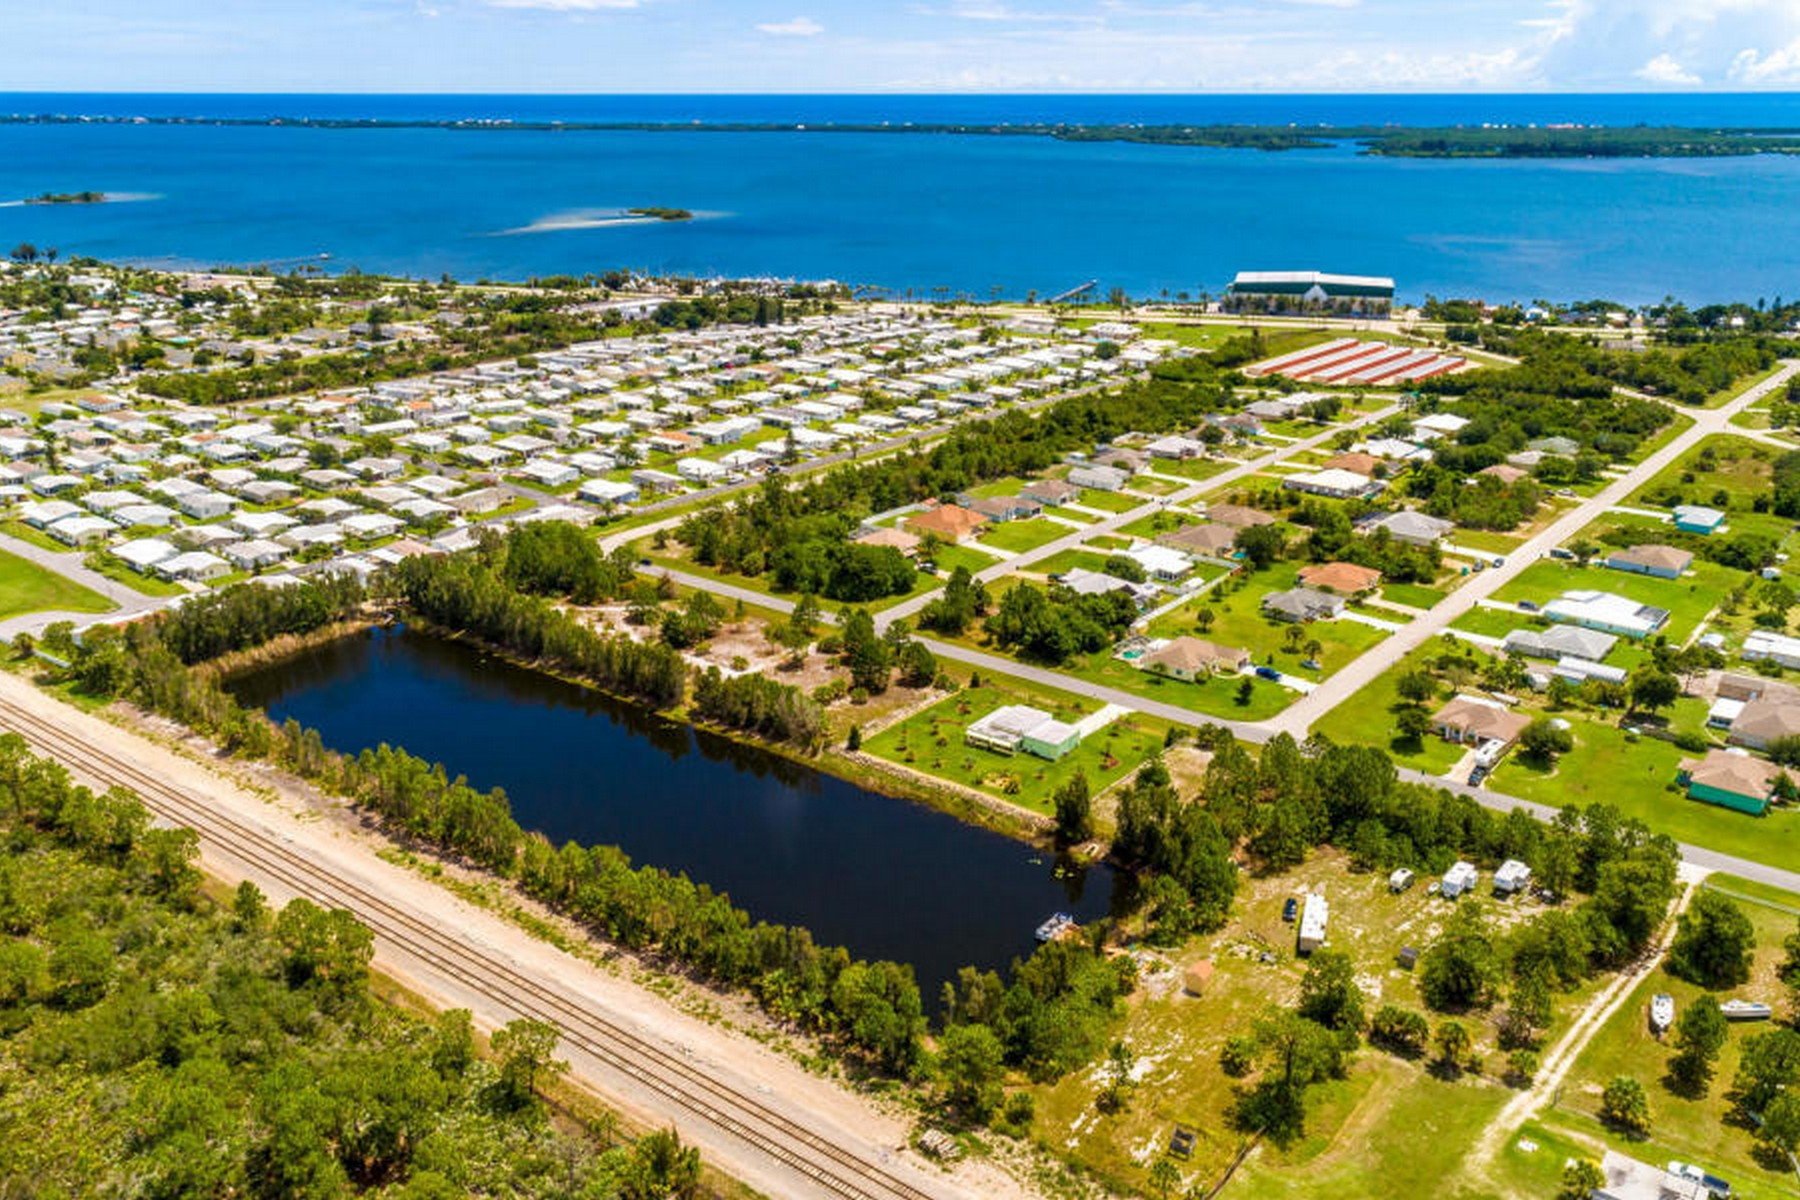 Additional photo for property listing at Ideally Located Lakefront Property TBD Unkown Micco, Florida 32976 United States